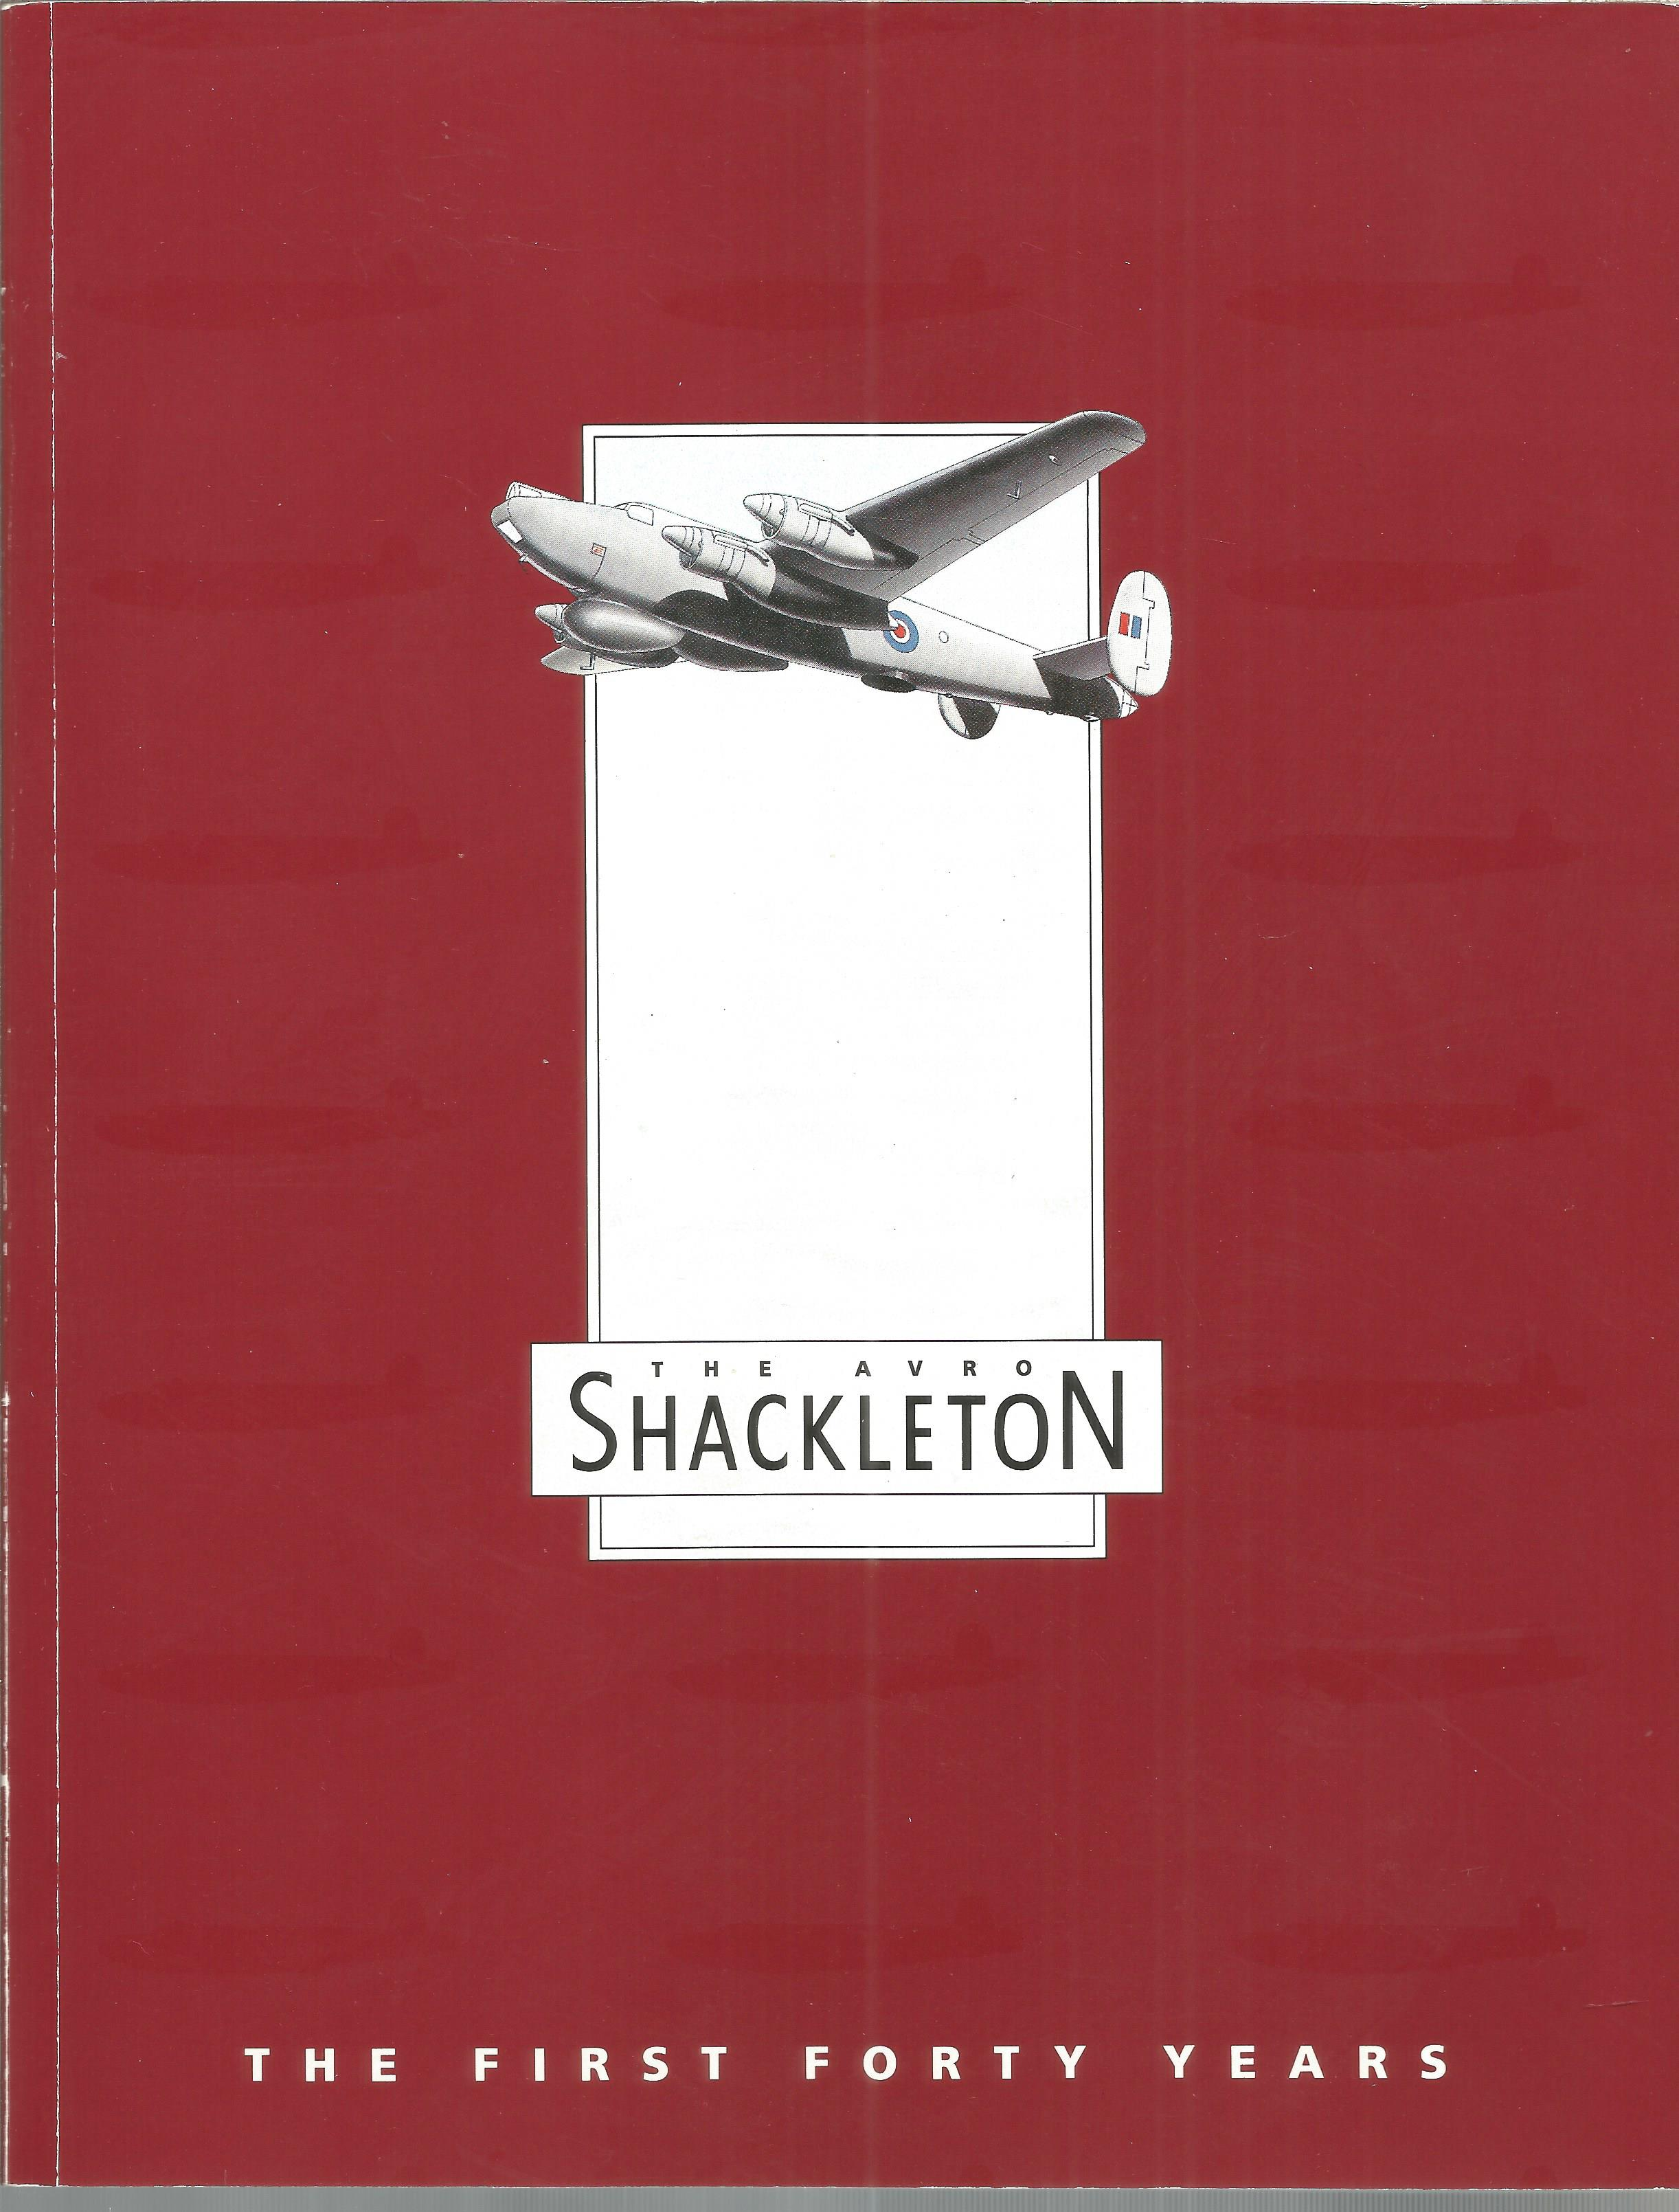 Aviation Shackleton collection includes to original 9x7 black and white photos dated 11. 5. 49 and a